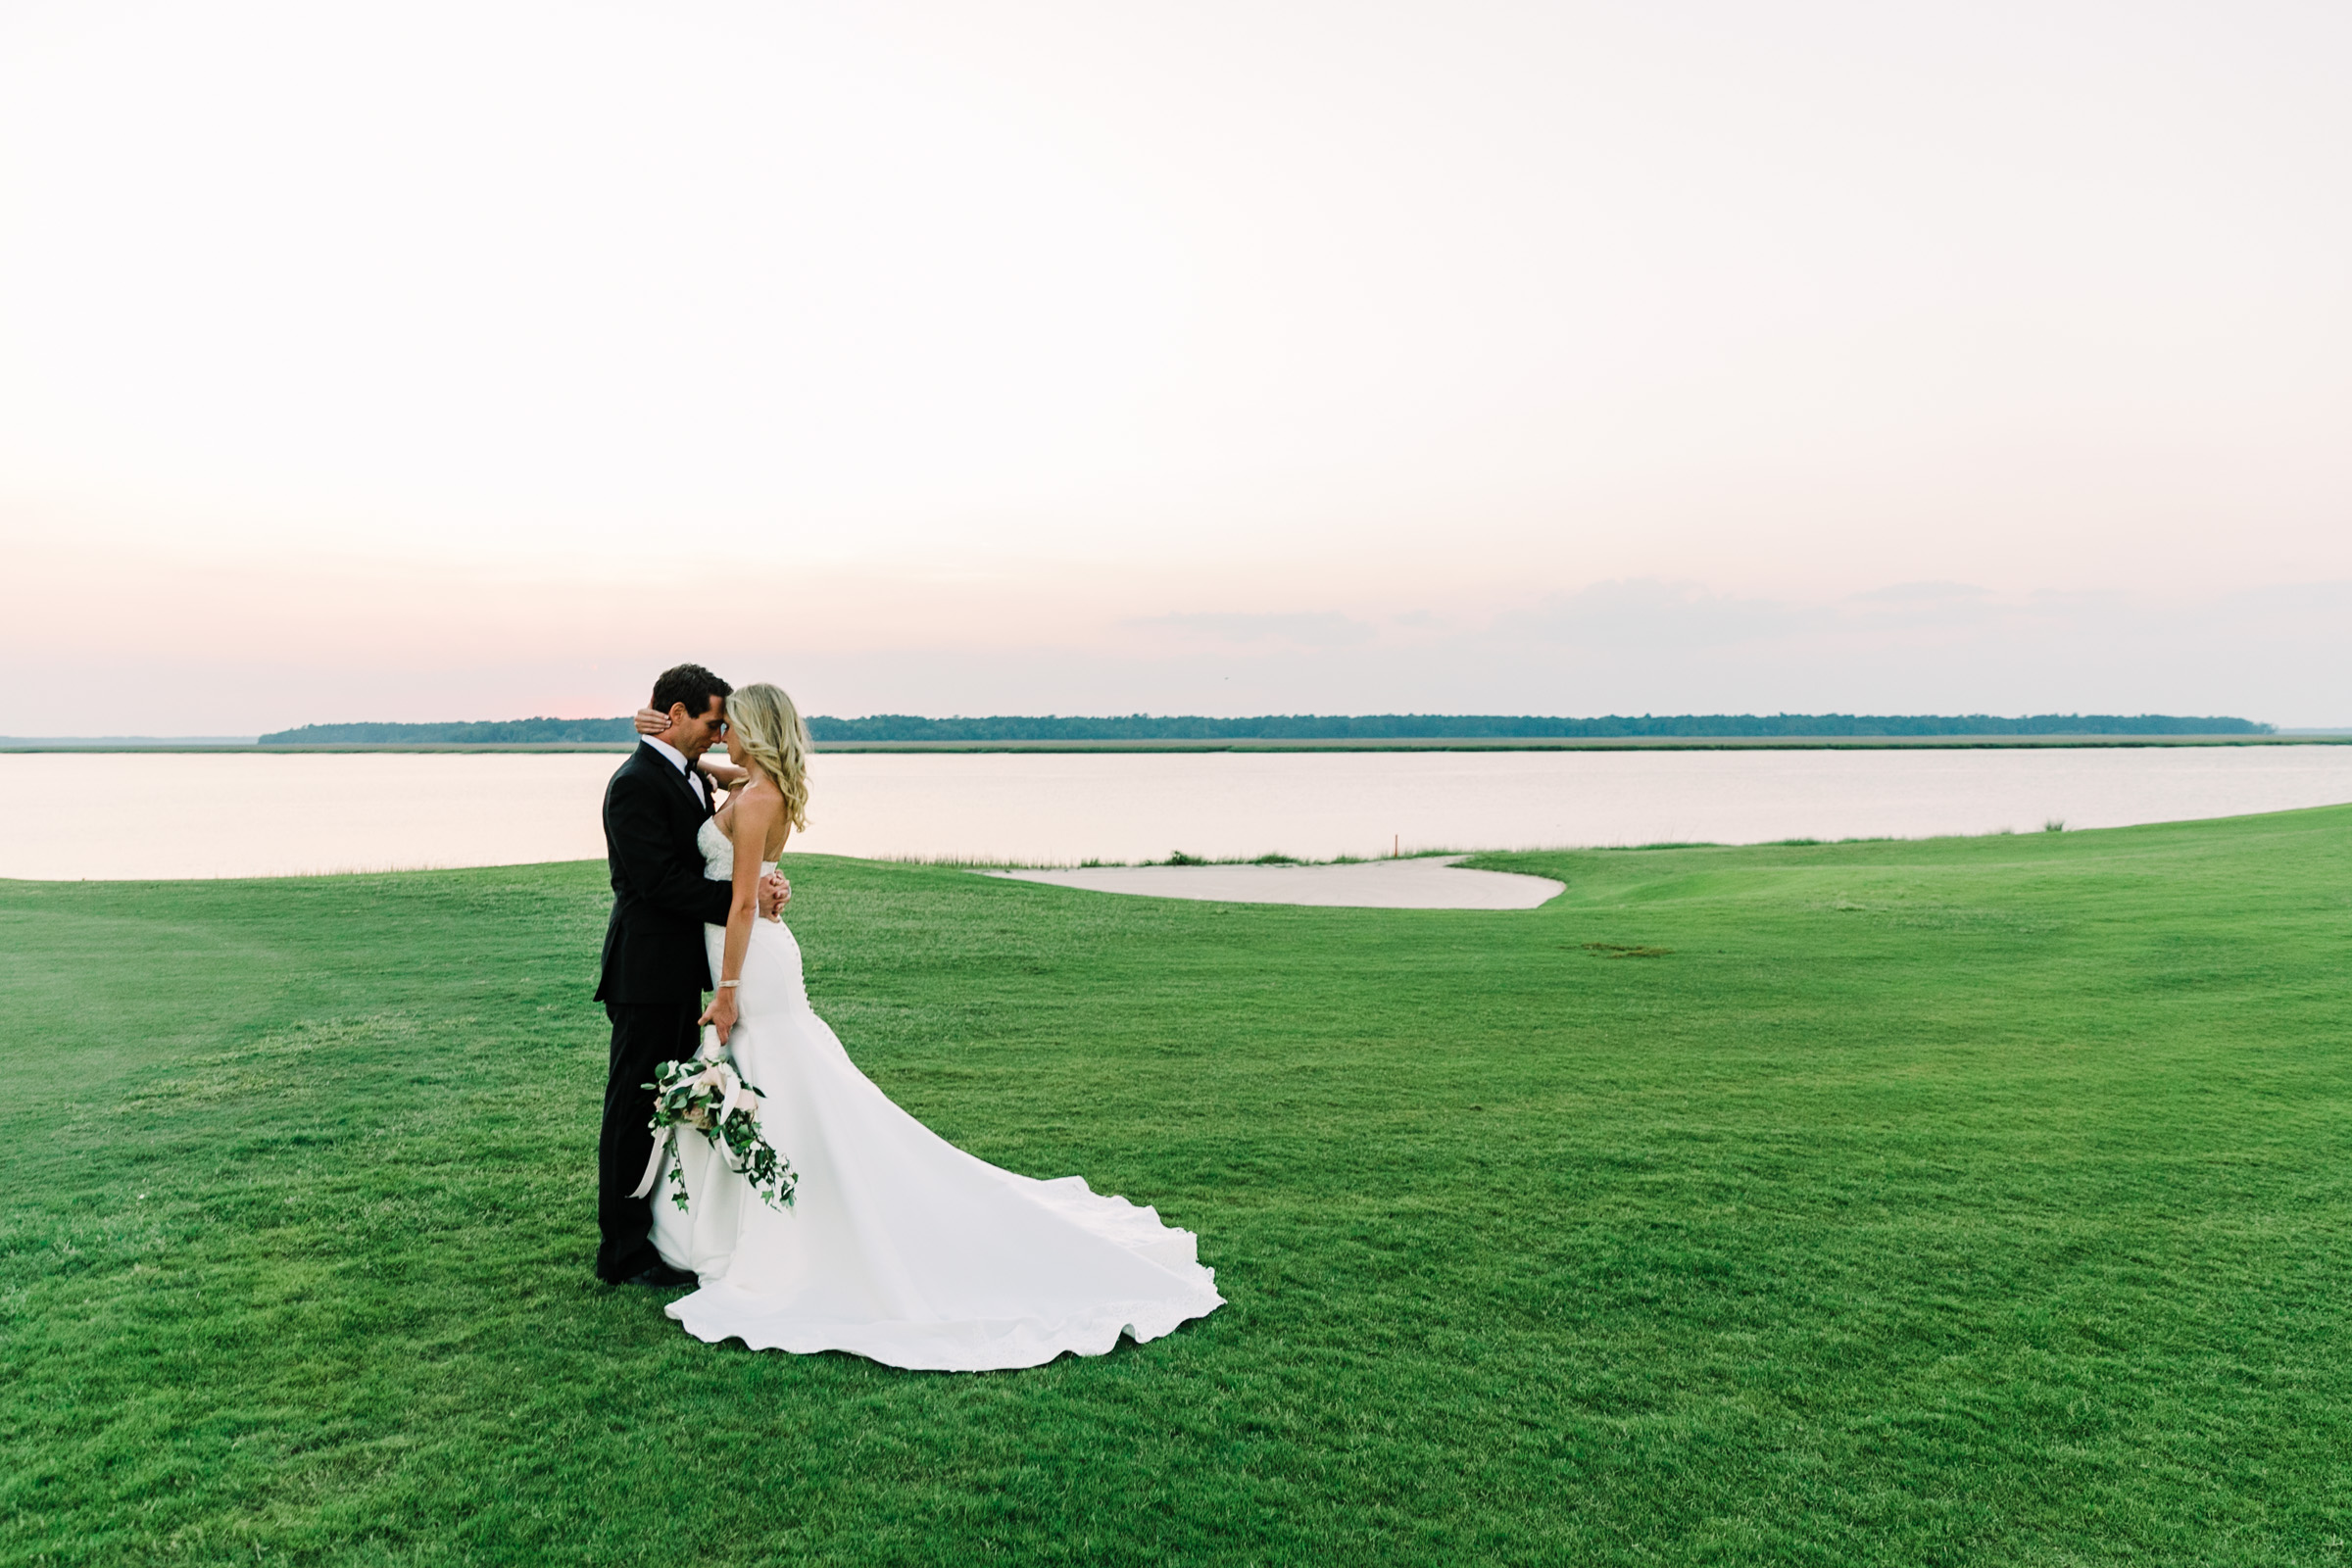 Katherine_ives_photography_mayer_wedding_Colleton.JPG